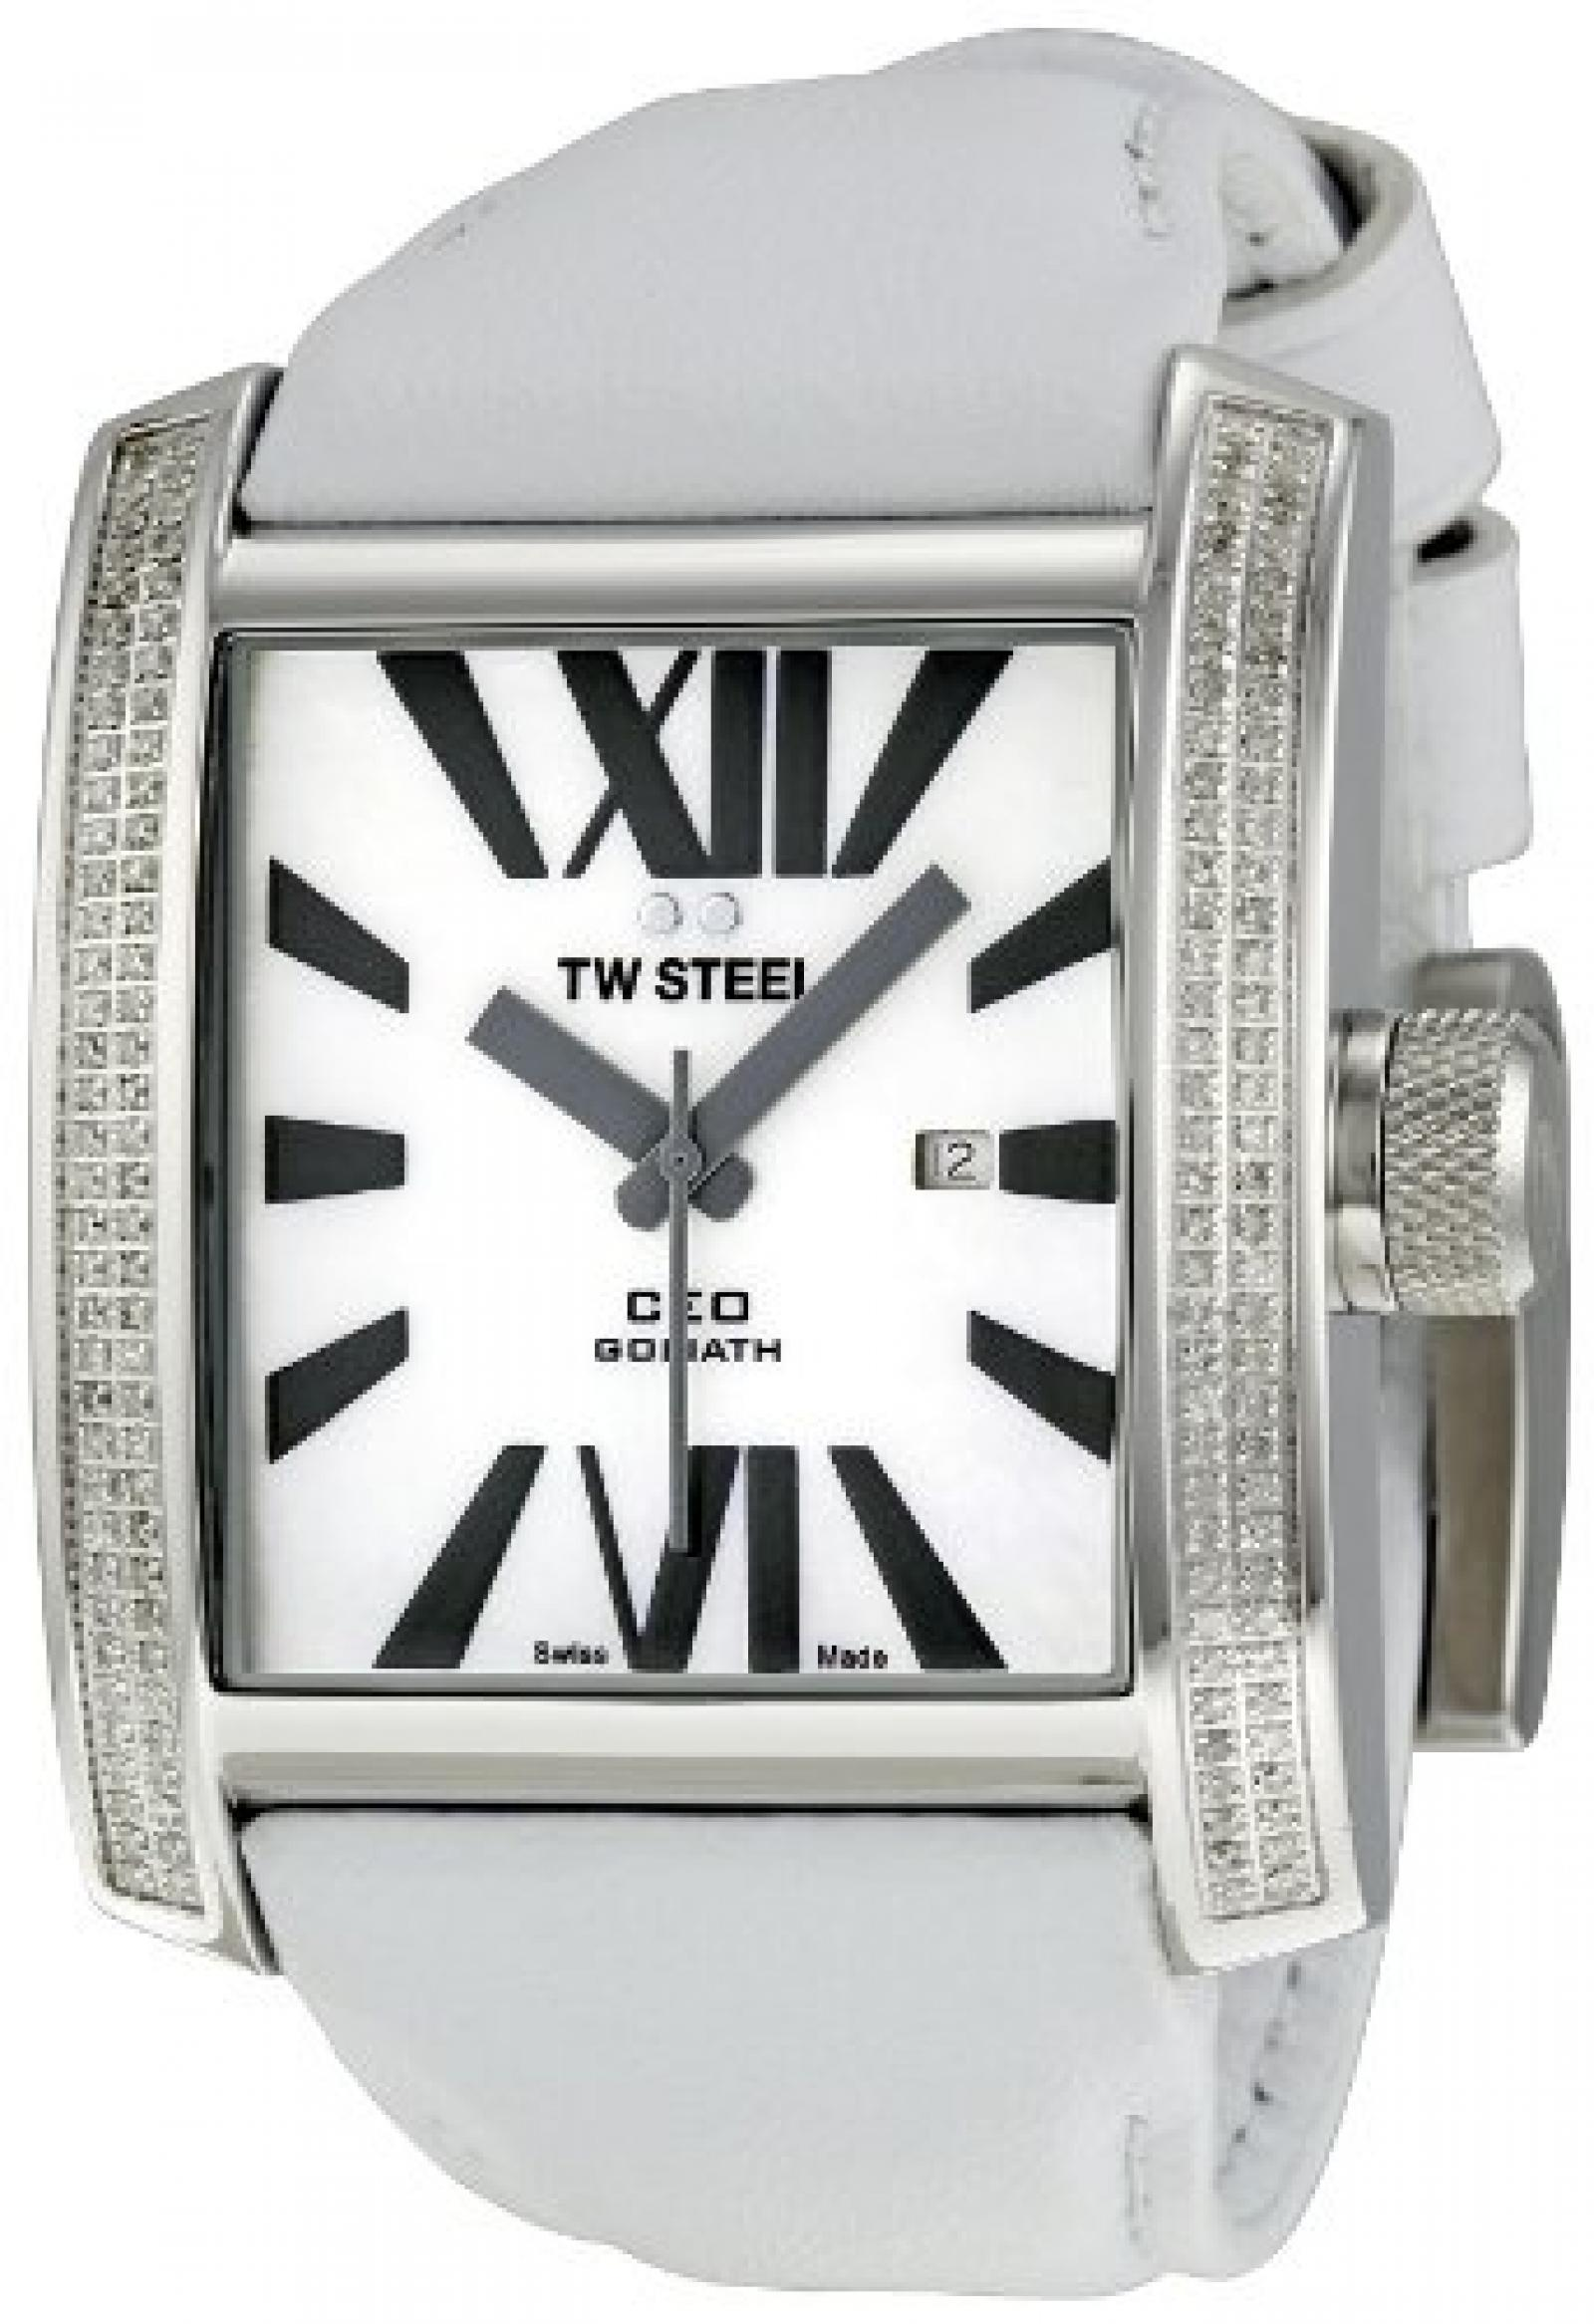 TW Steel Damen-Armbanduhr Ceo Goliath Analog Leder TWCE3015